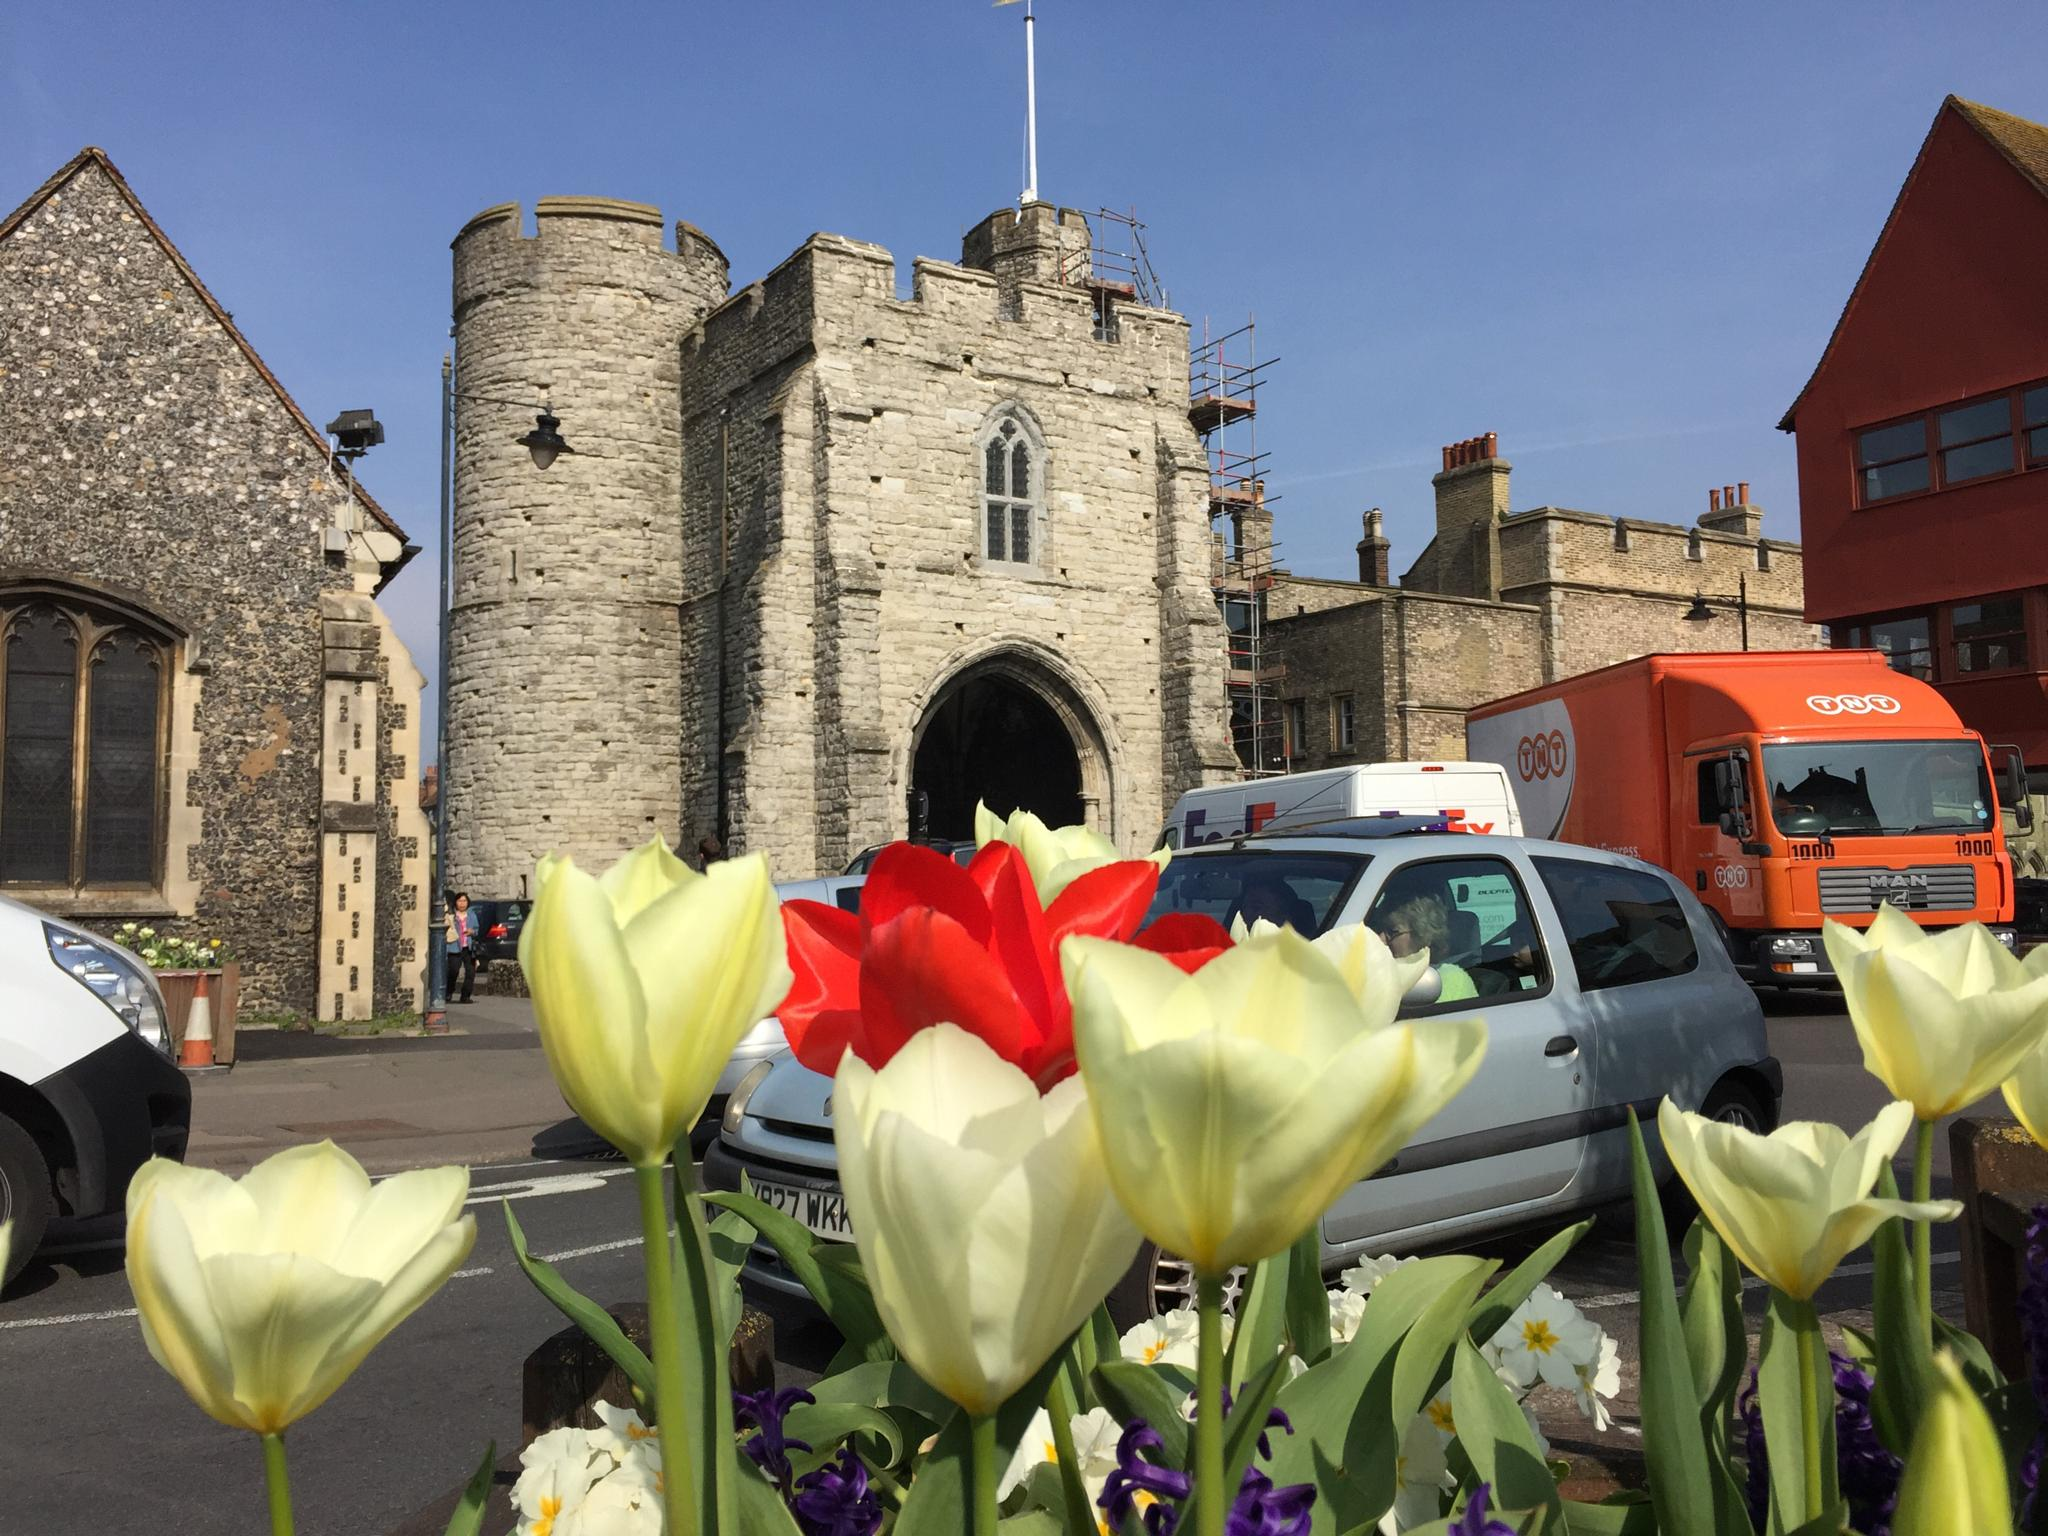 Towers & Traffic through Tulips by jhippisley